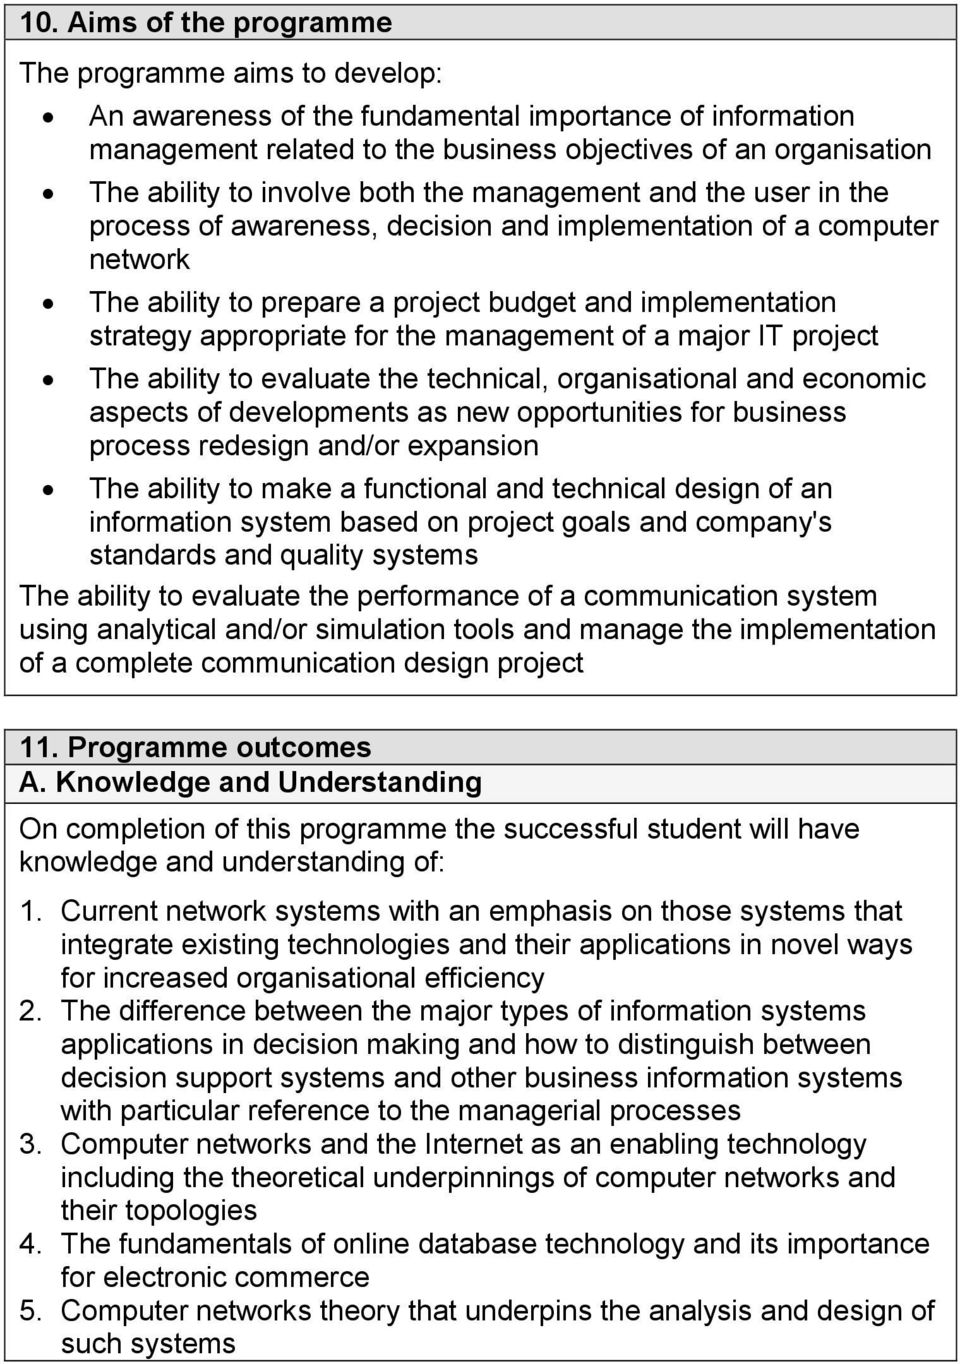 for the management of a major IT project The ability to evaluate the technical, organisational and economic aspects of developments as new opportunities for business process redesign and/or expansion